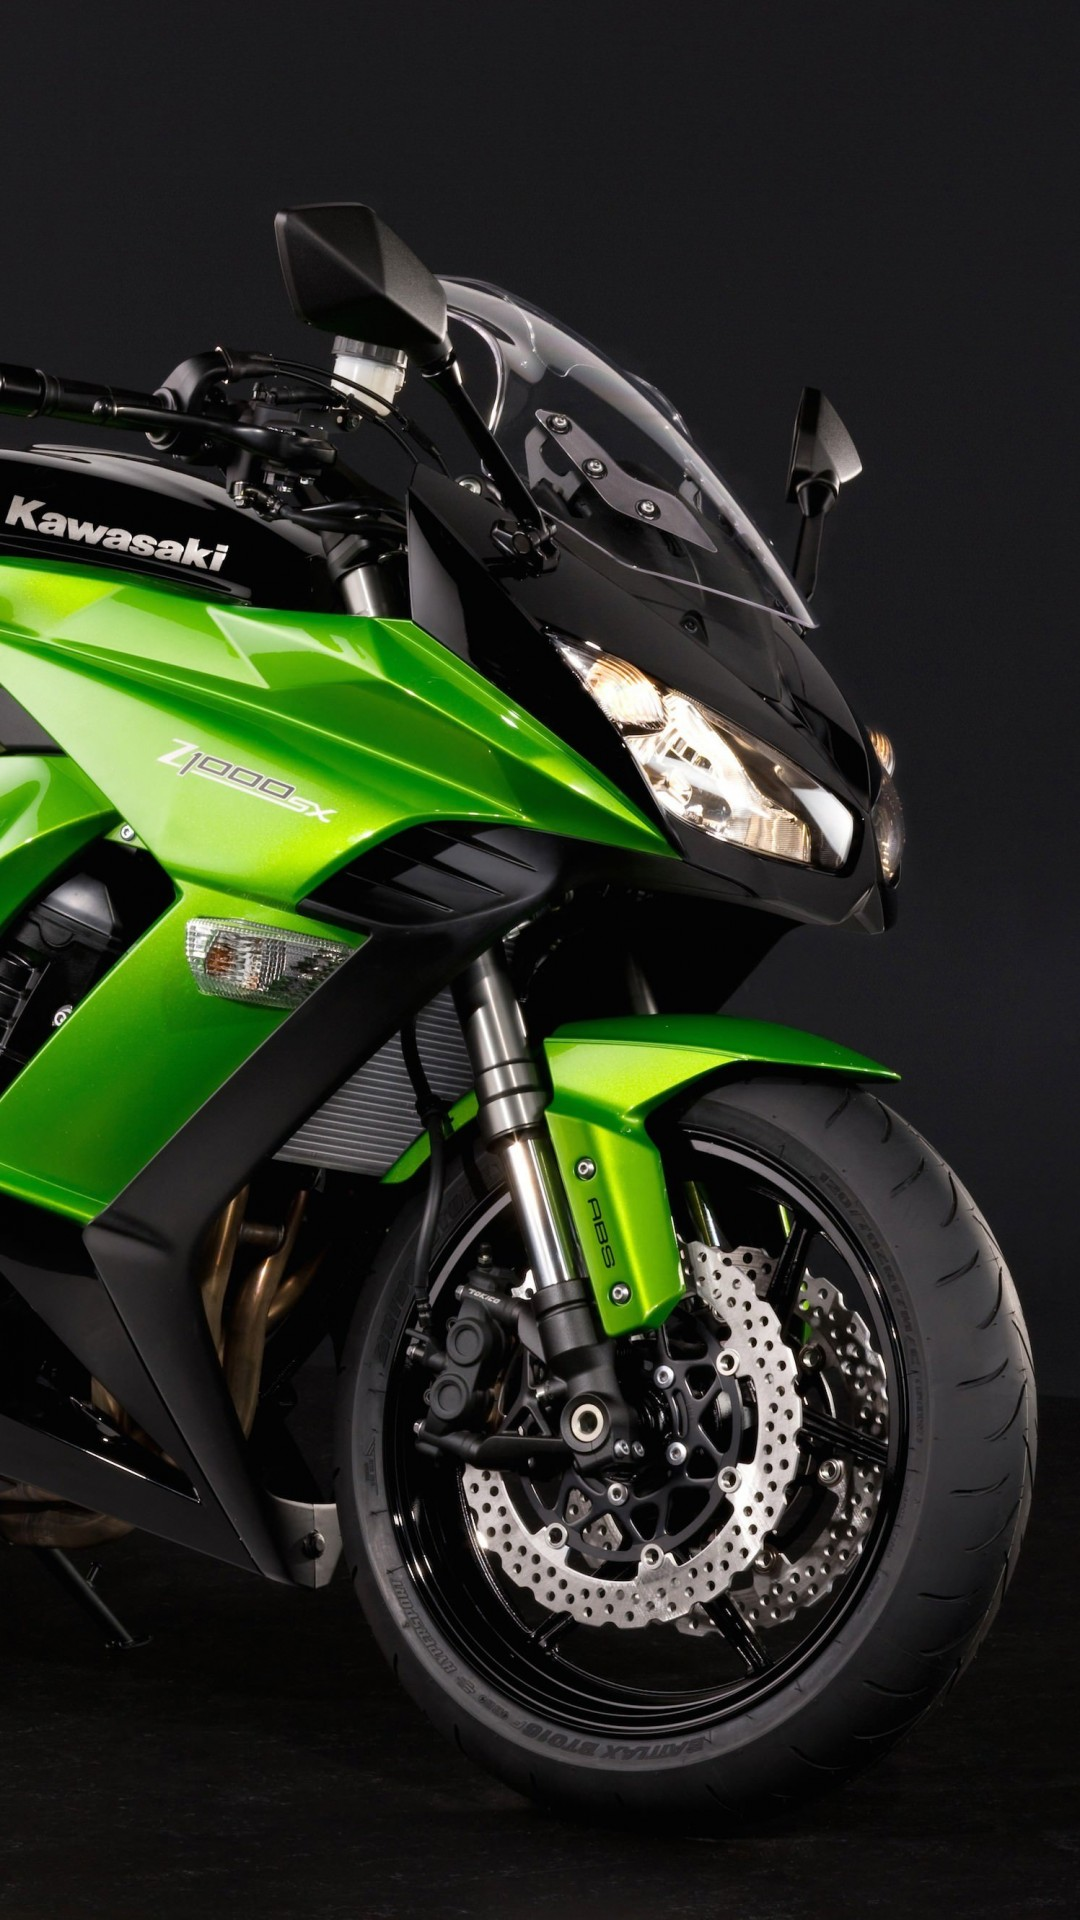 Kawasaki Kawasaki Z1000SX Wallpaper for Google Nexus 5